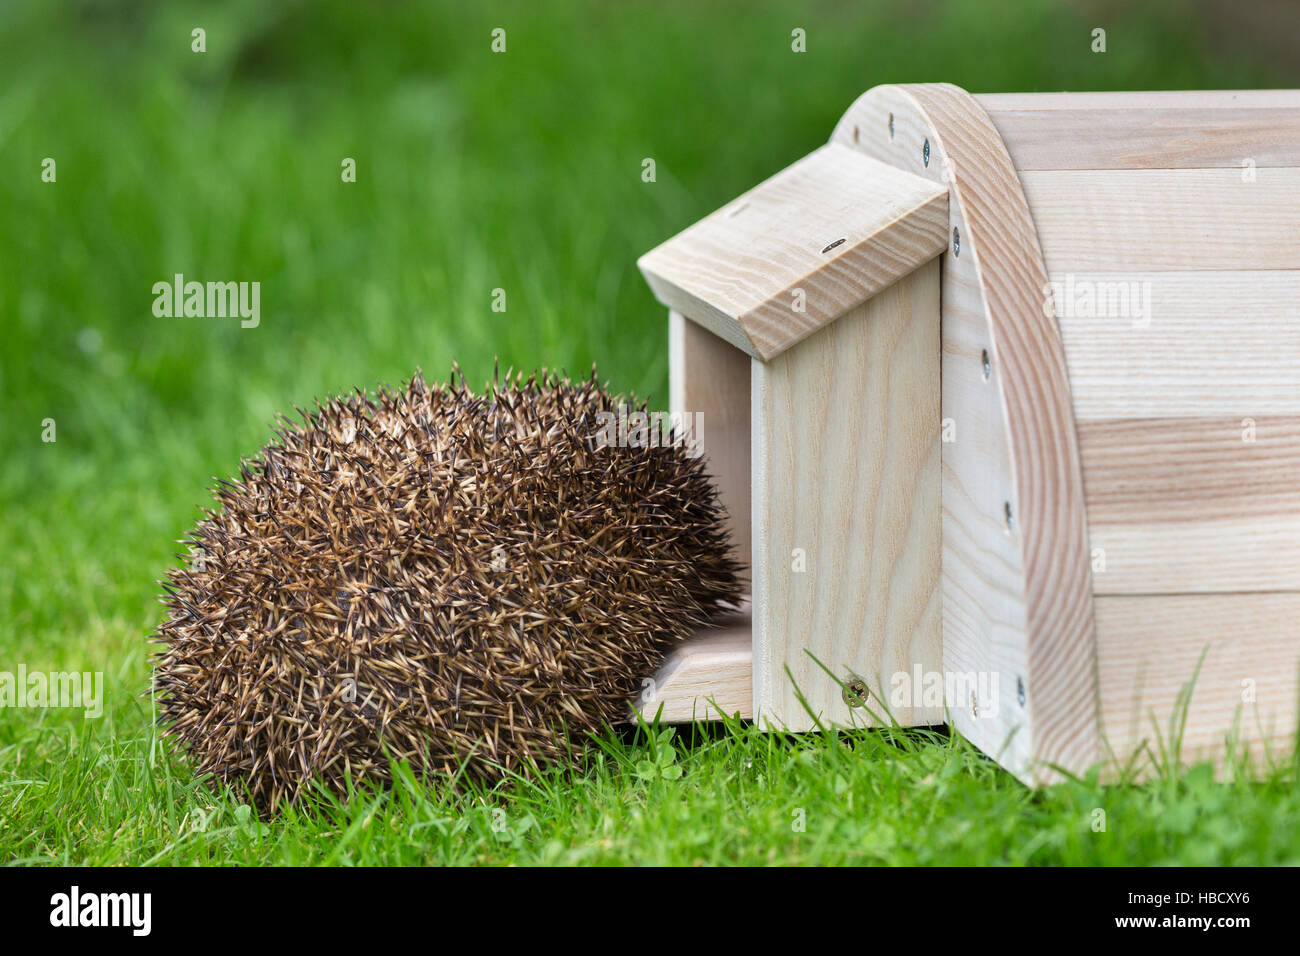 Hedgehog (Erinaceus europaeus) entering hedgehog house, captive, UK - Stock Image